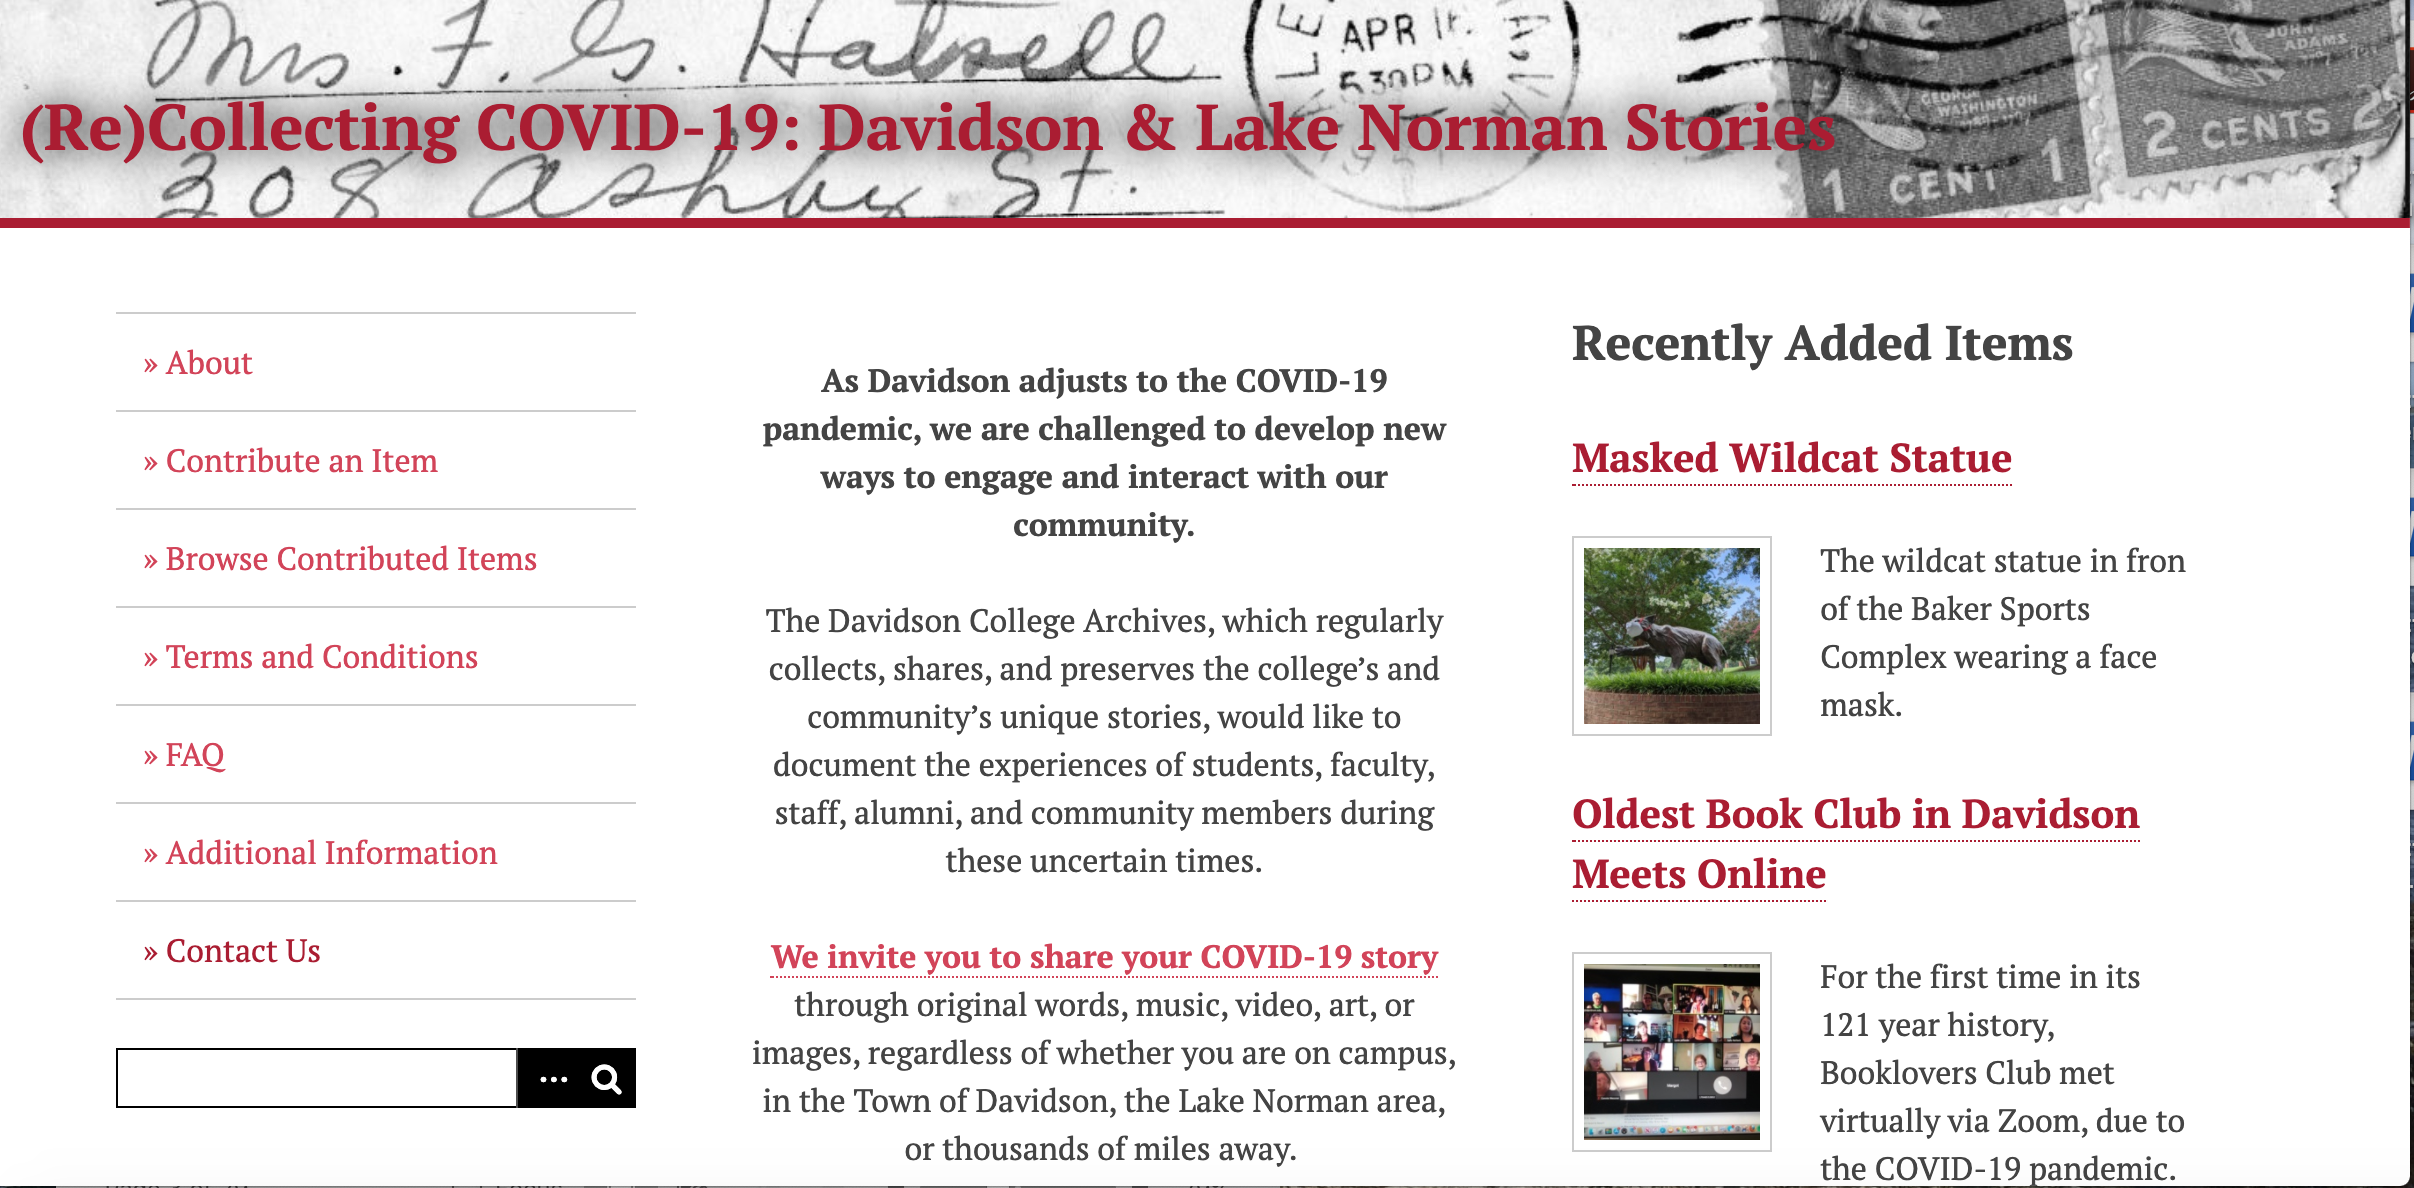 (Re)Collecting COVID-19: Davidson and Lake Norman Stories